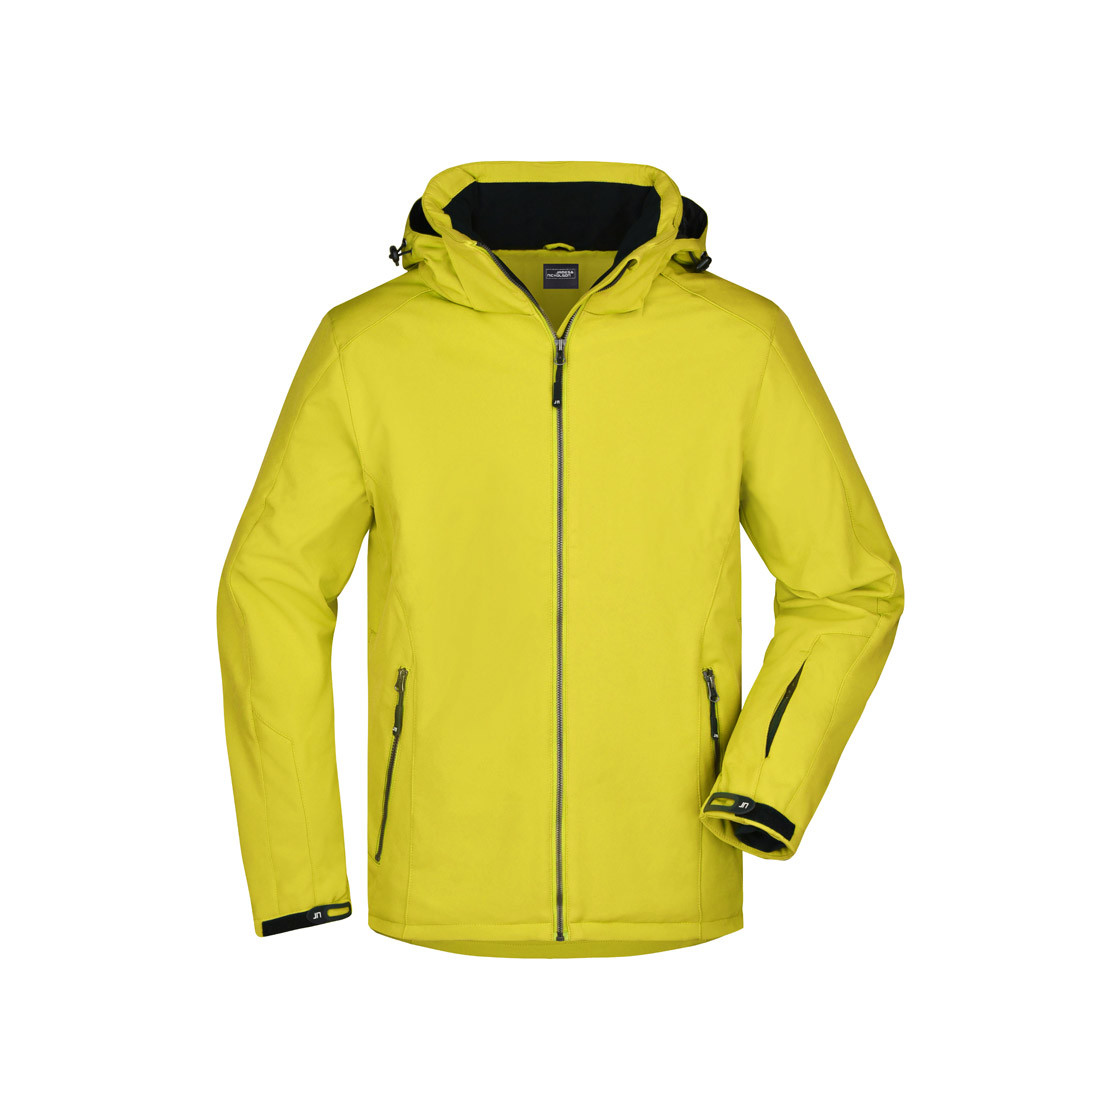 James & Nicholson | JN 1054 Herren Wintersport Softshell Jacke